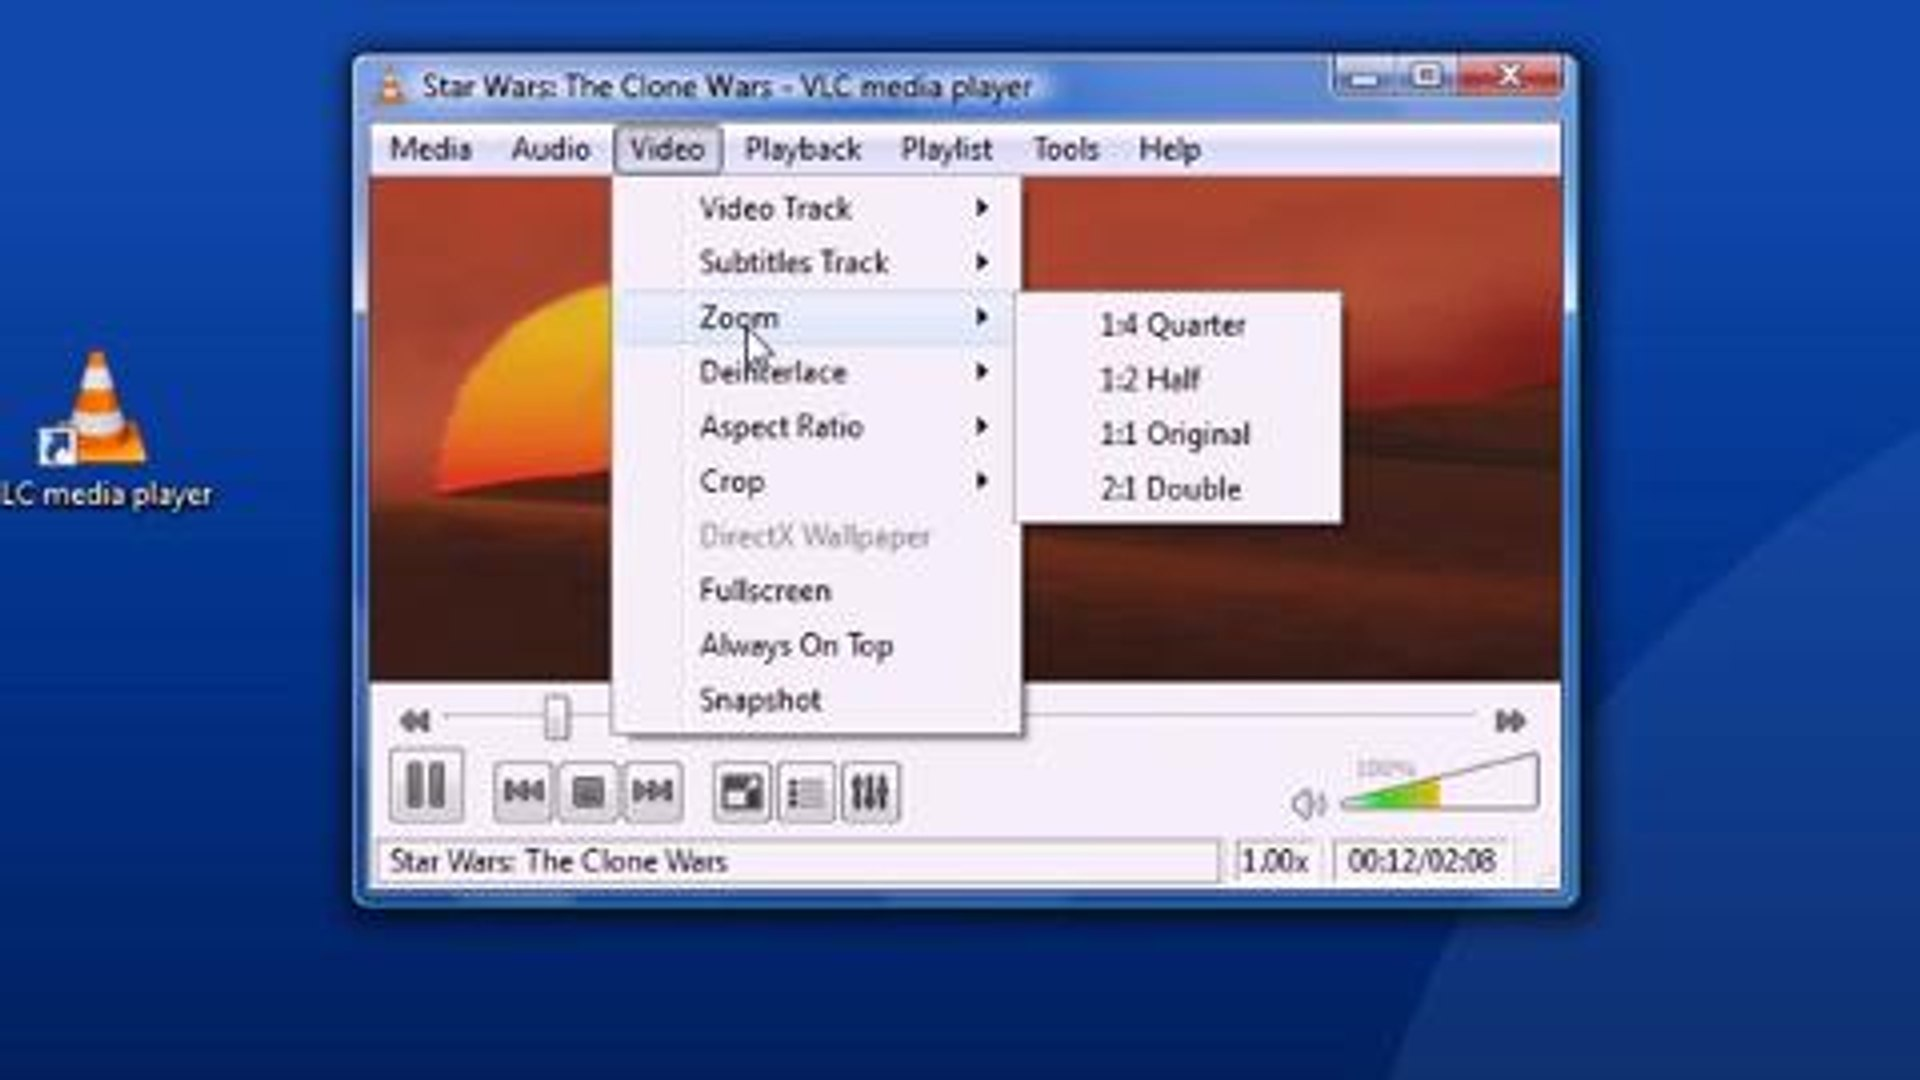 VLC Media Player Overview